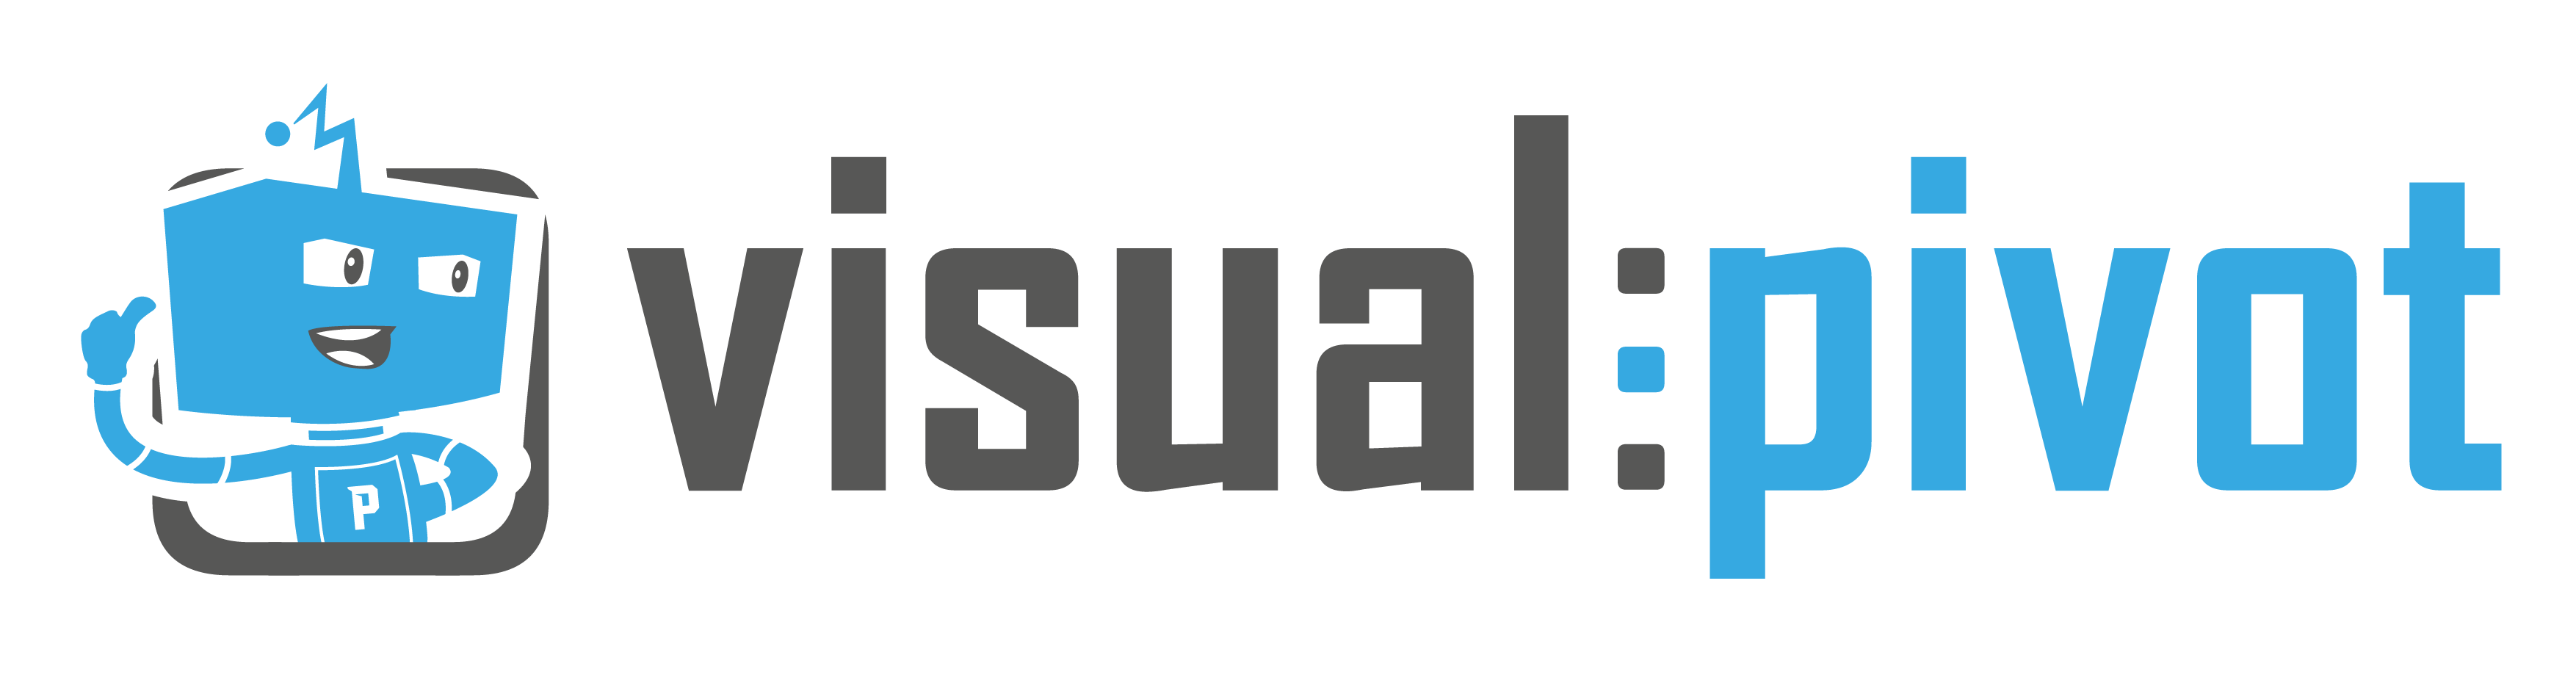 visualpivot_logo